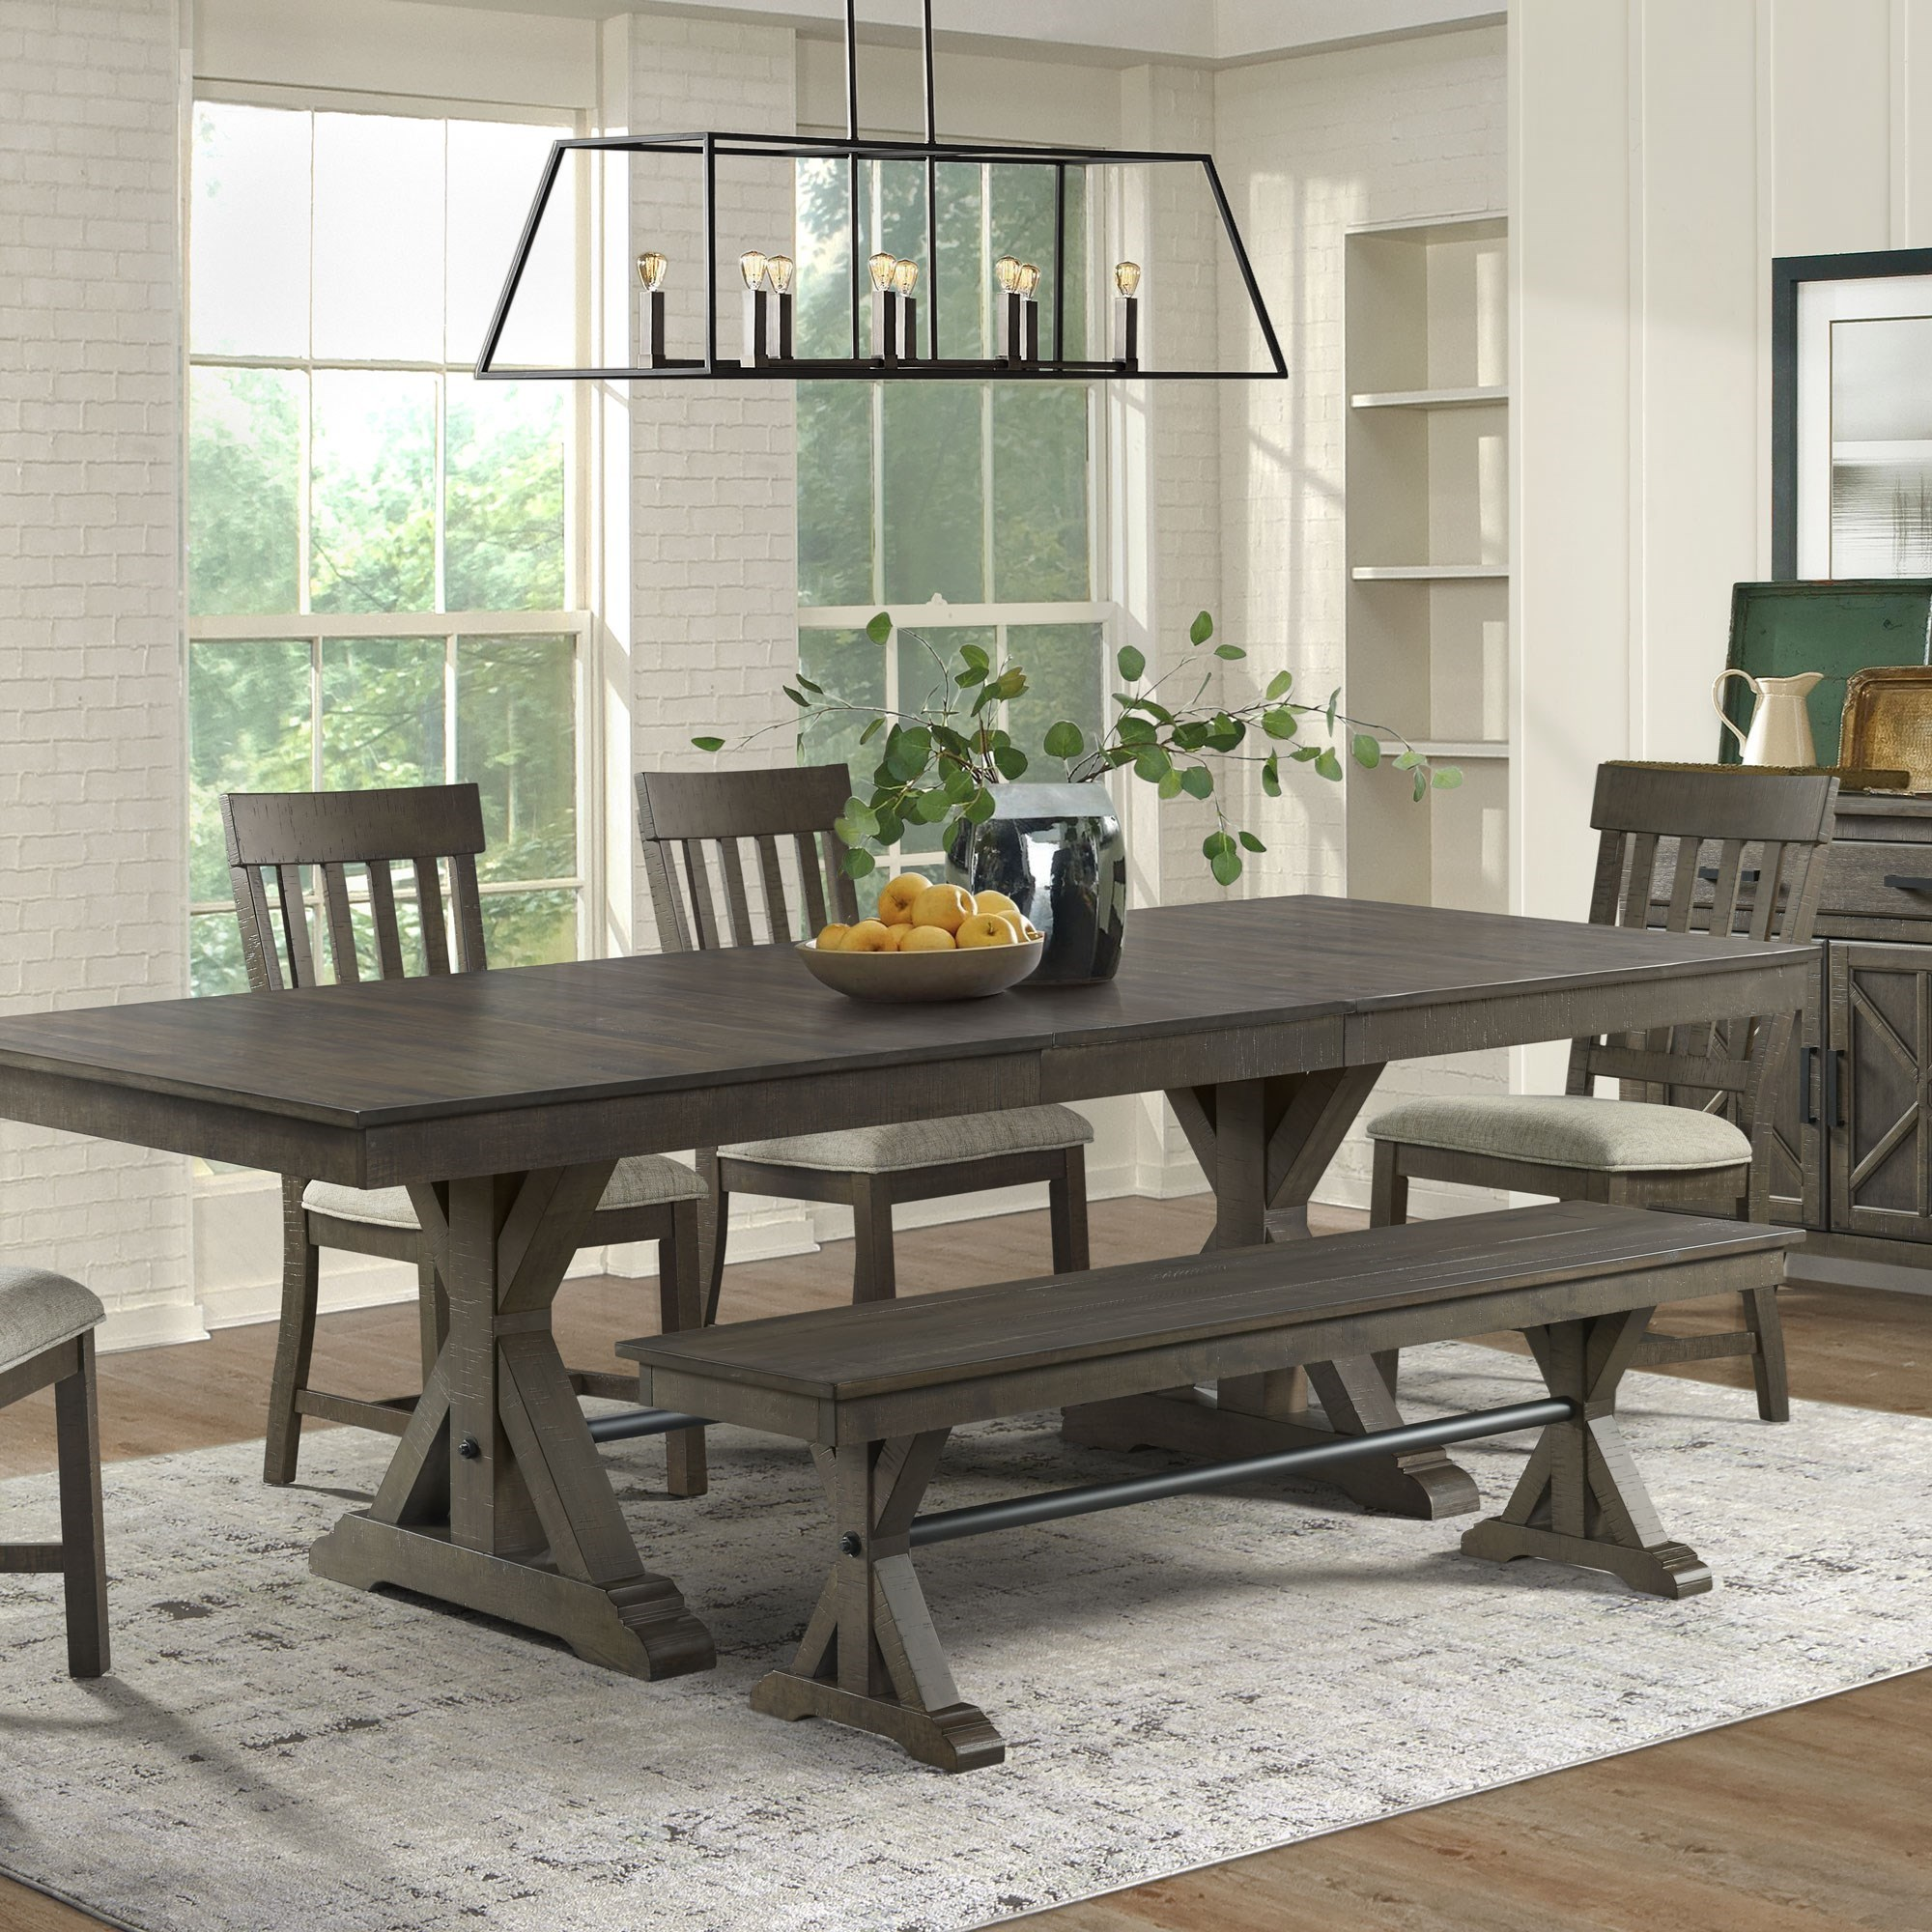 Image of: Intercon Sullivan Farmhouse Table And Chair Set With Bench Rife S Home Furniture Table Chair Set With Bench